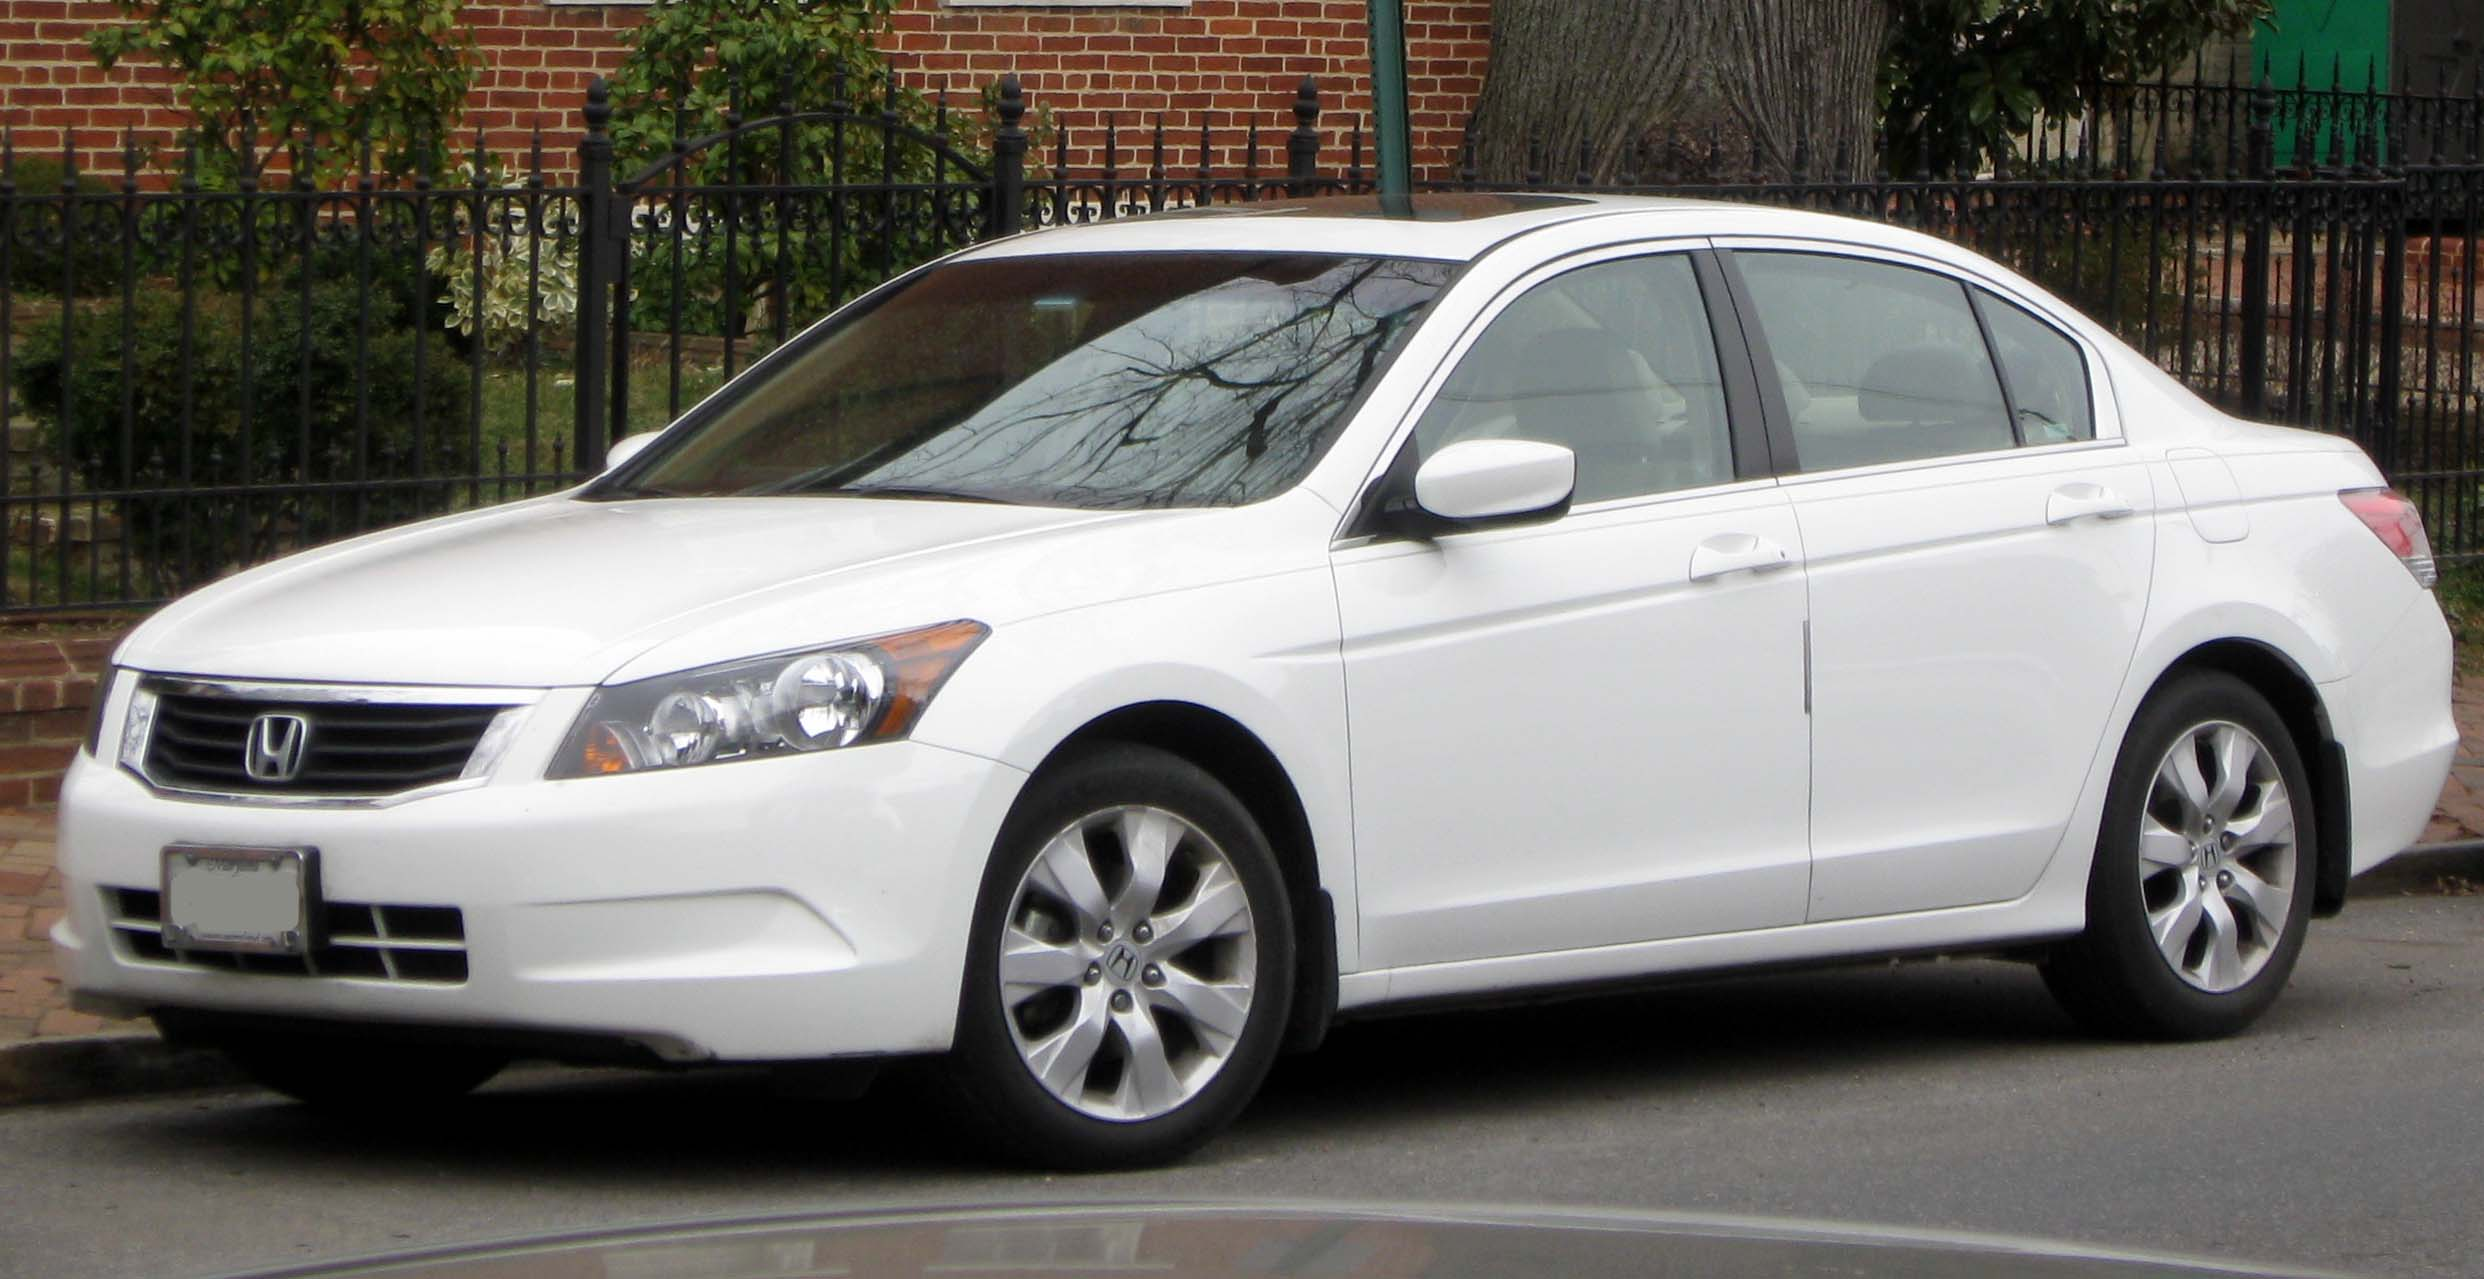 Honda Accord #12